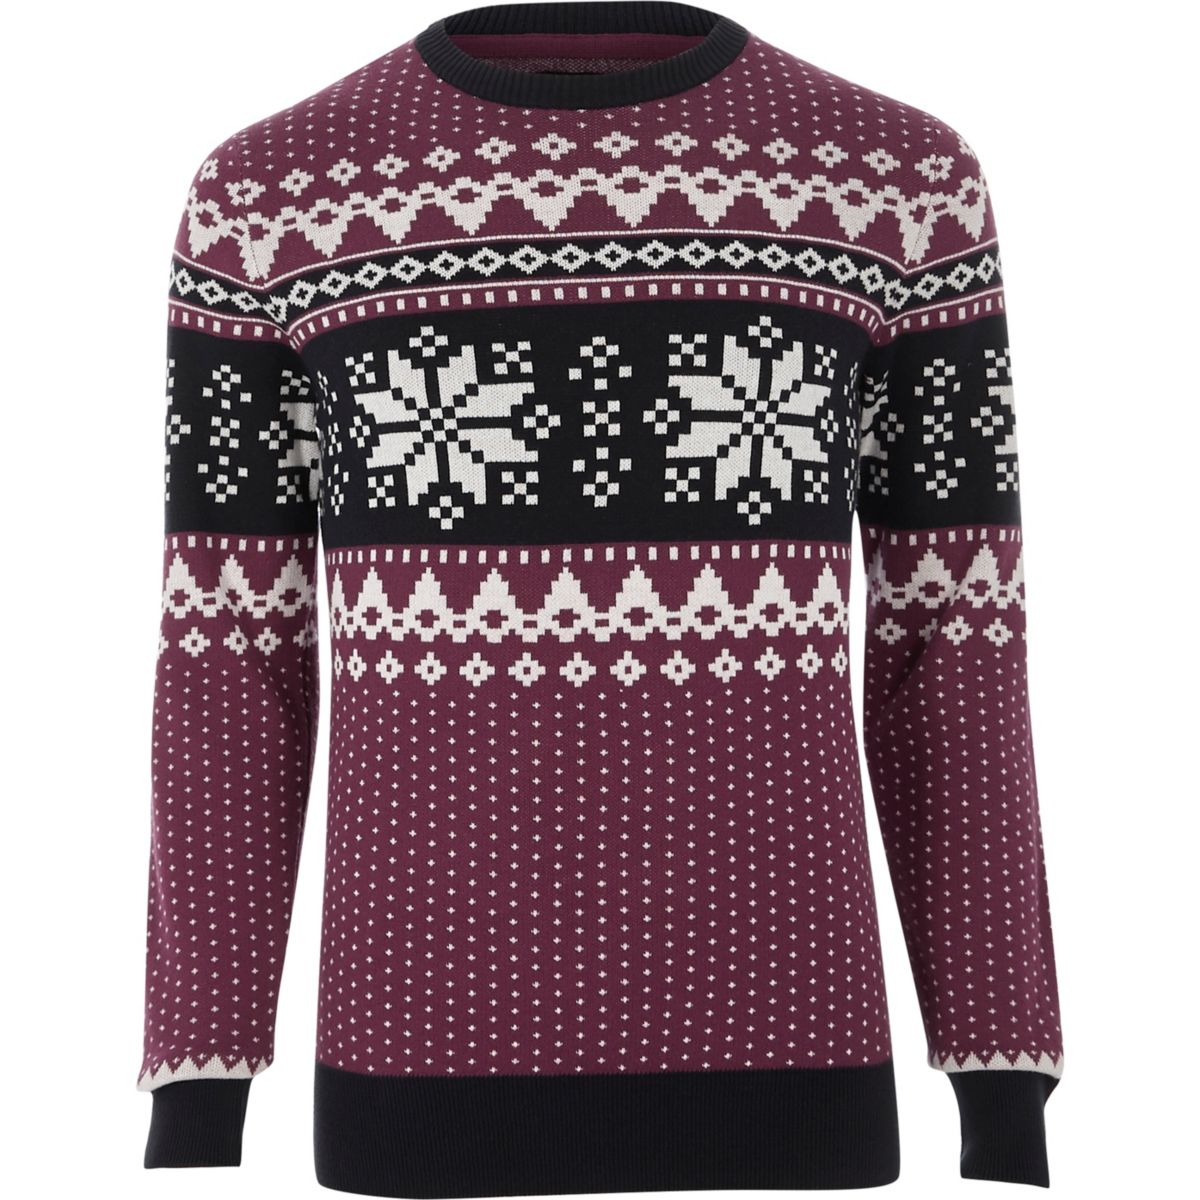 Jack & Jones red Fairisle Christmas sweater